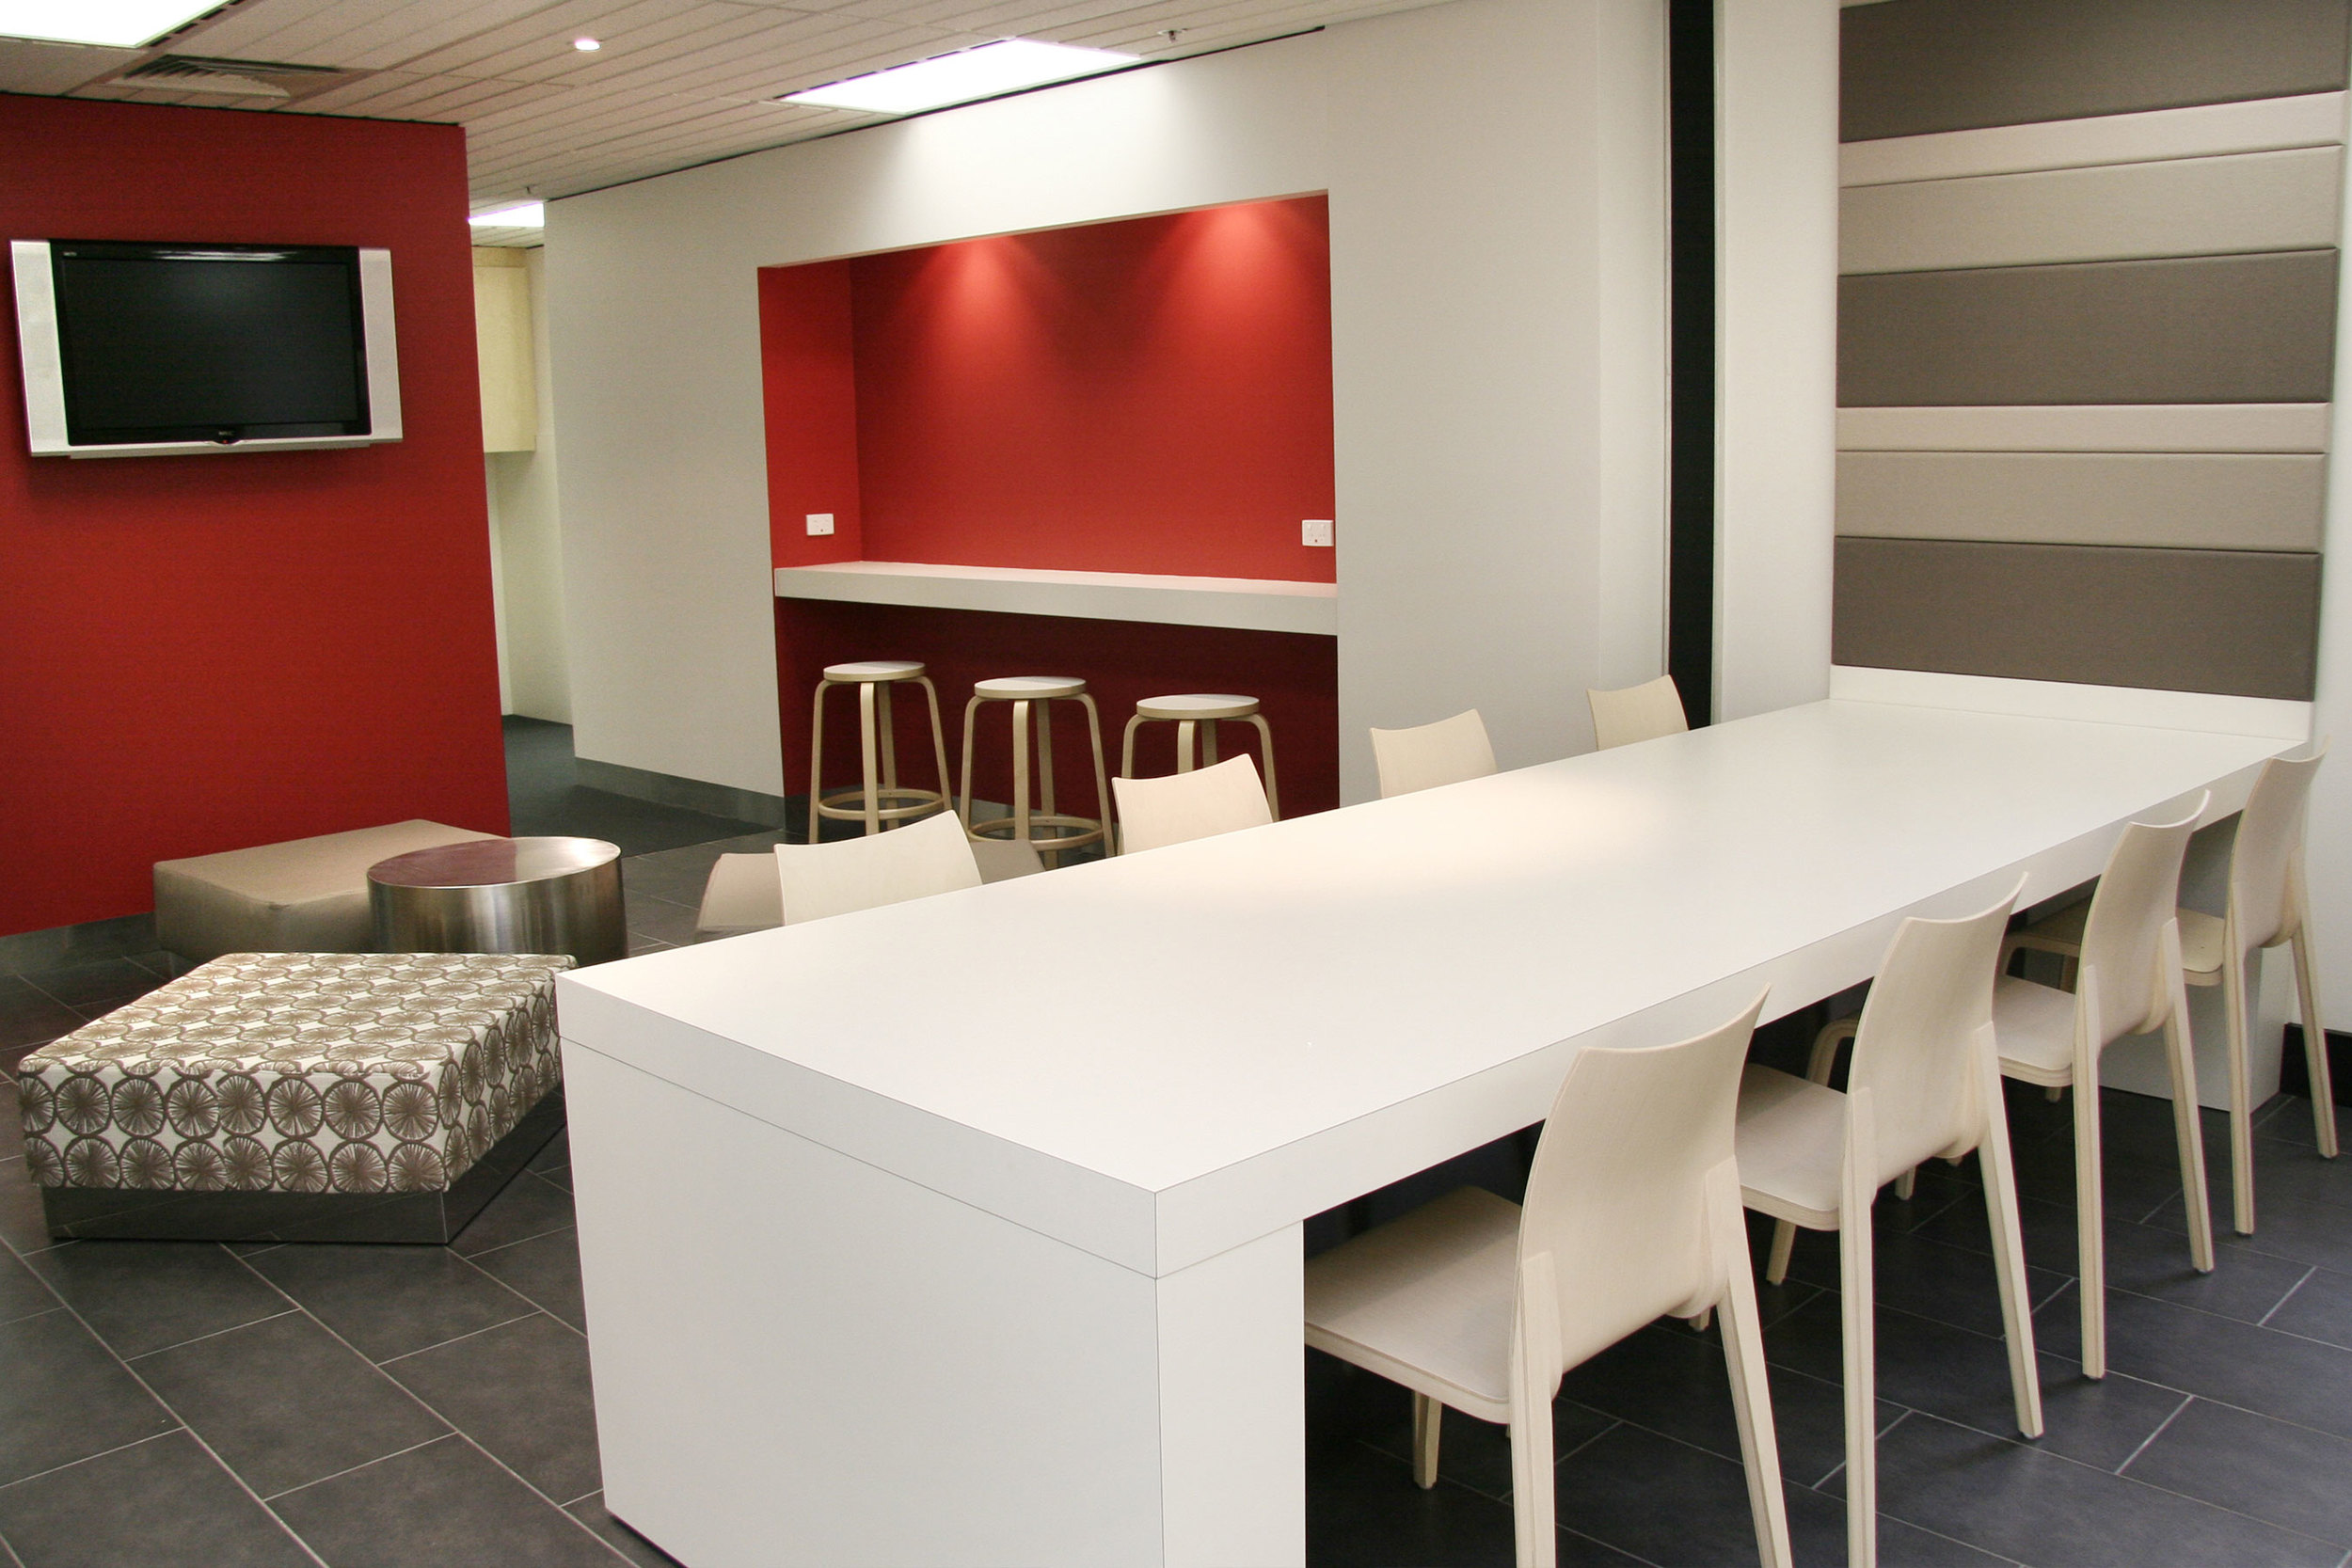 Colour is used as an effective way-finding system to differentiate floor-levels